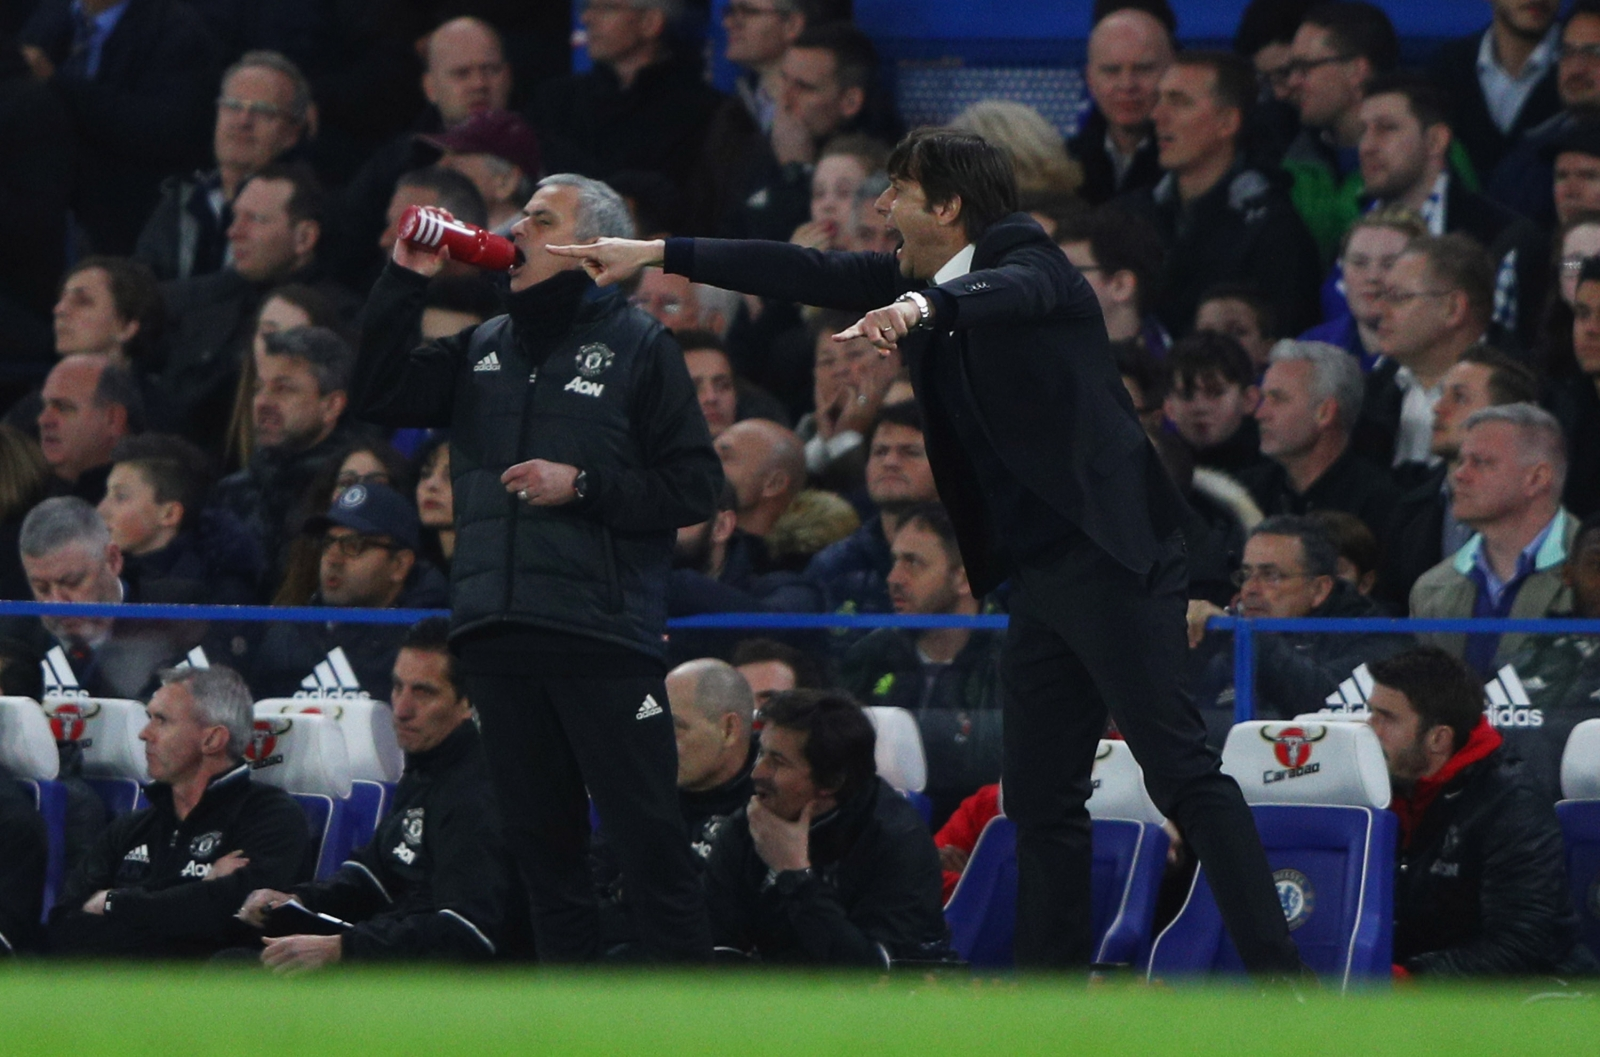 Antonio Conte goes on the attack against 'senile' José Mourinho